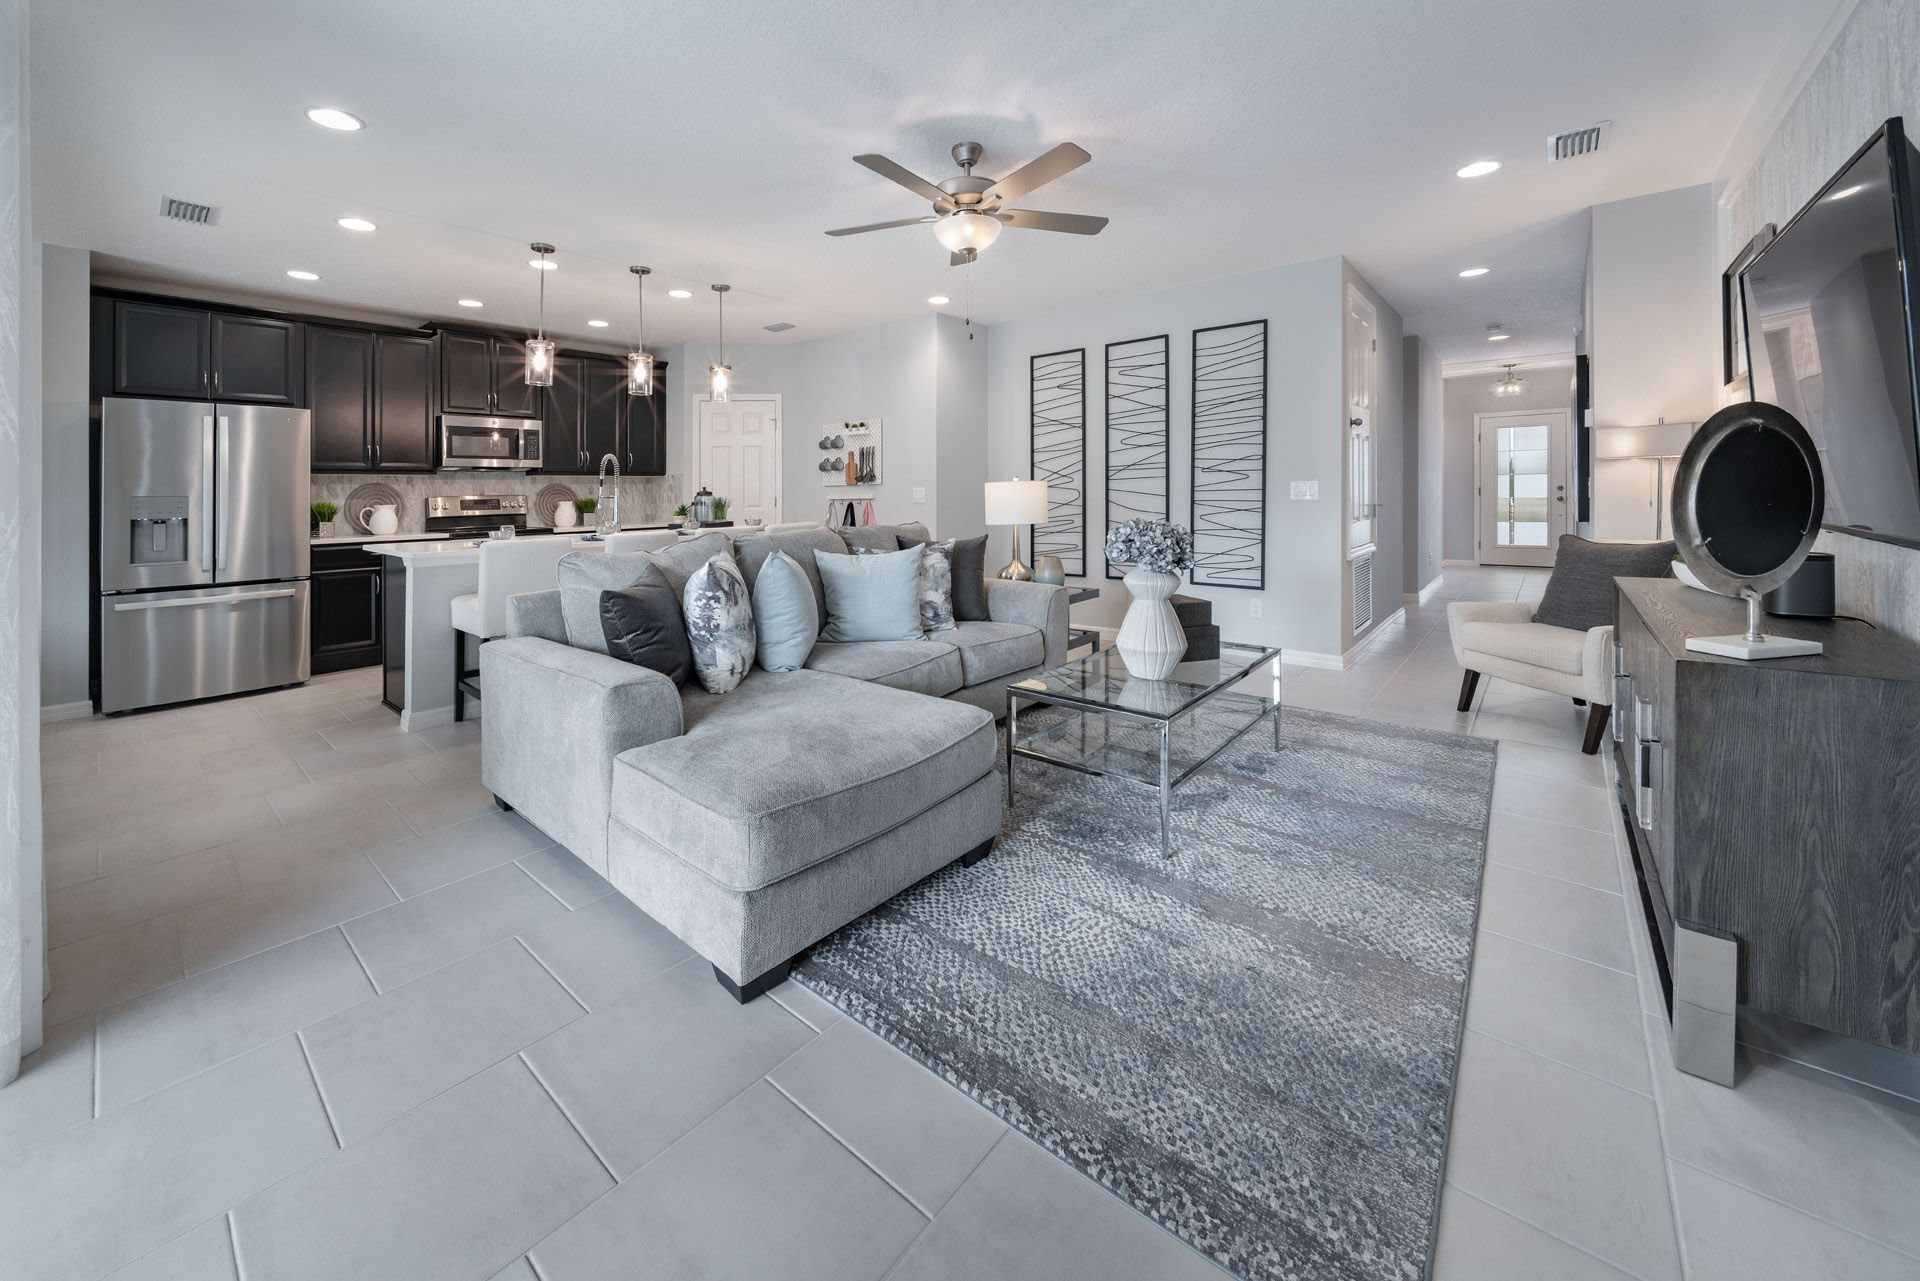 Entire Main Open Area:Selby Flex Model Home in Orchid Terrace, Haines City